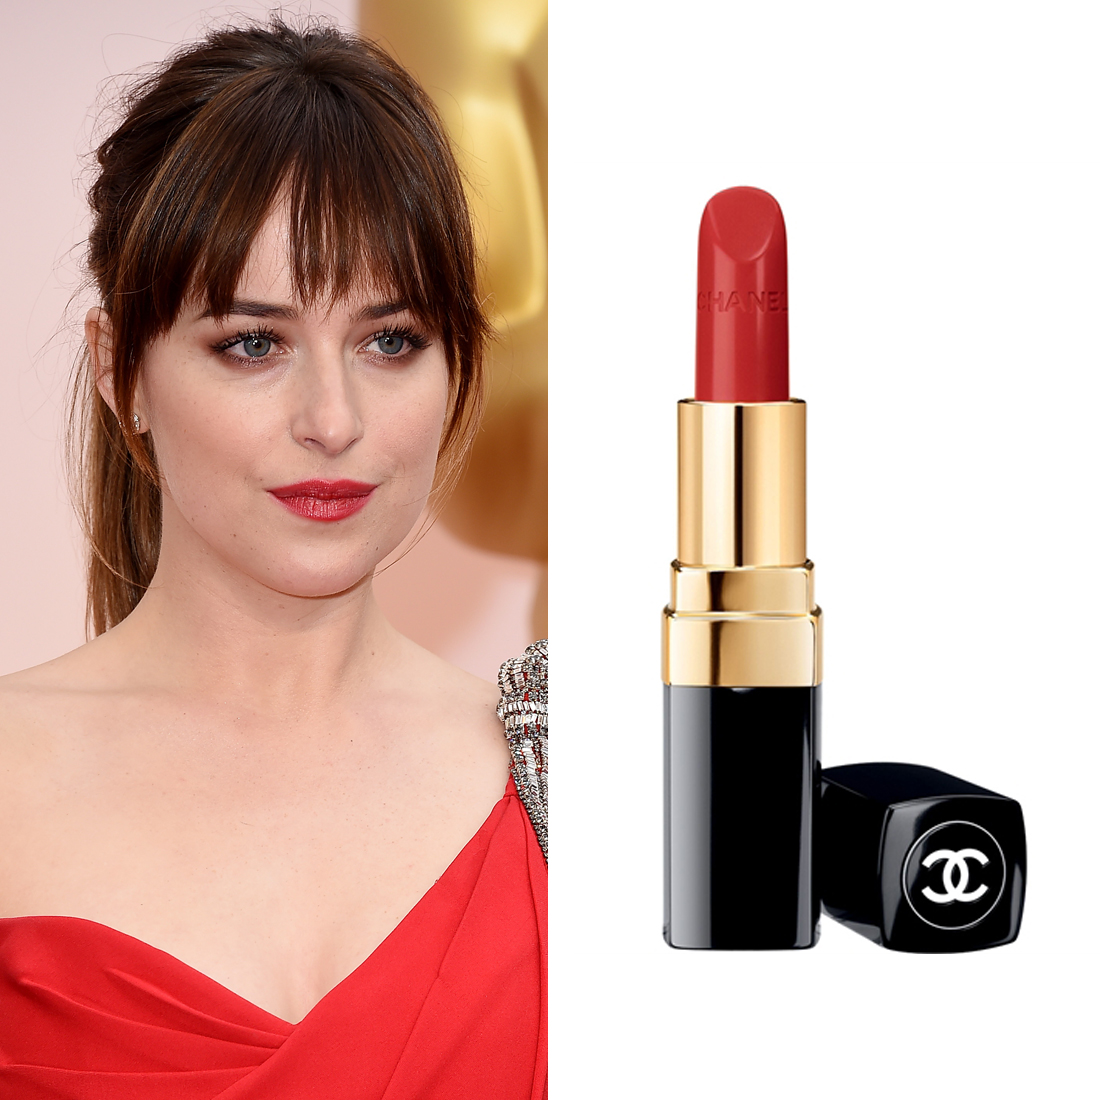 Dakota Johnson at the Oscars     For a long-wear red lip colour, makeup artist Kara Yoshimoto Bua applied a small amount of  Rouge Coco Ultra Hydrating Lip Colour in Gabrielle  ($52). Then, she blotted the colour away before adding another, more saturated layer.  Image Source:  Getty    Read More     Oscars Beauty  Celebrity Beauty  Award Season  Beauty Shopping  Oscars  Golden Globe Awards  Dakota Johnson  Chanel  Red Carpet